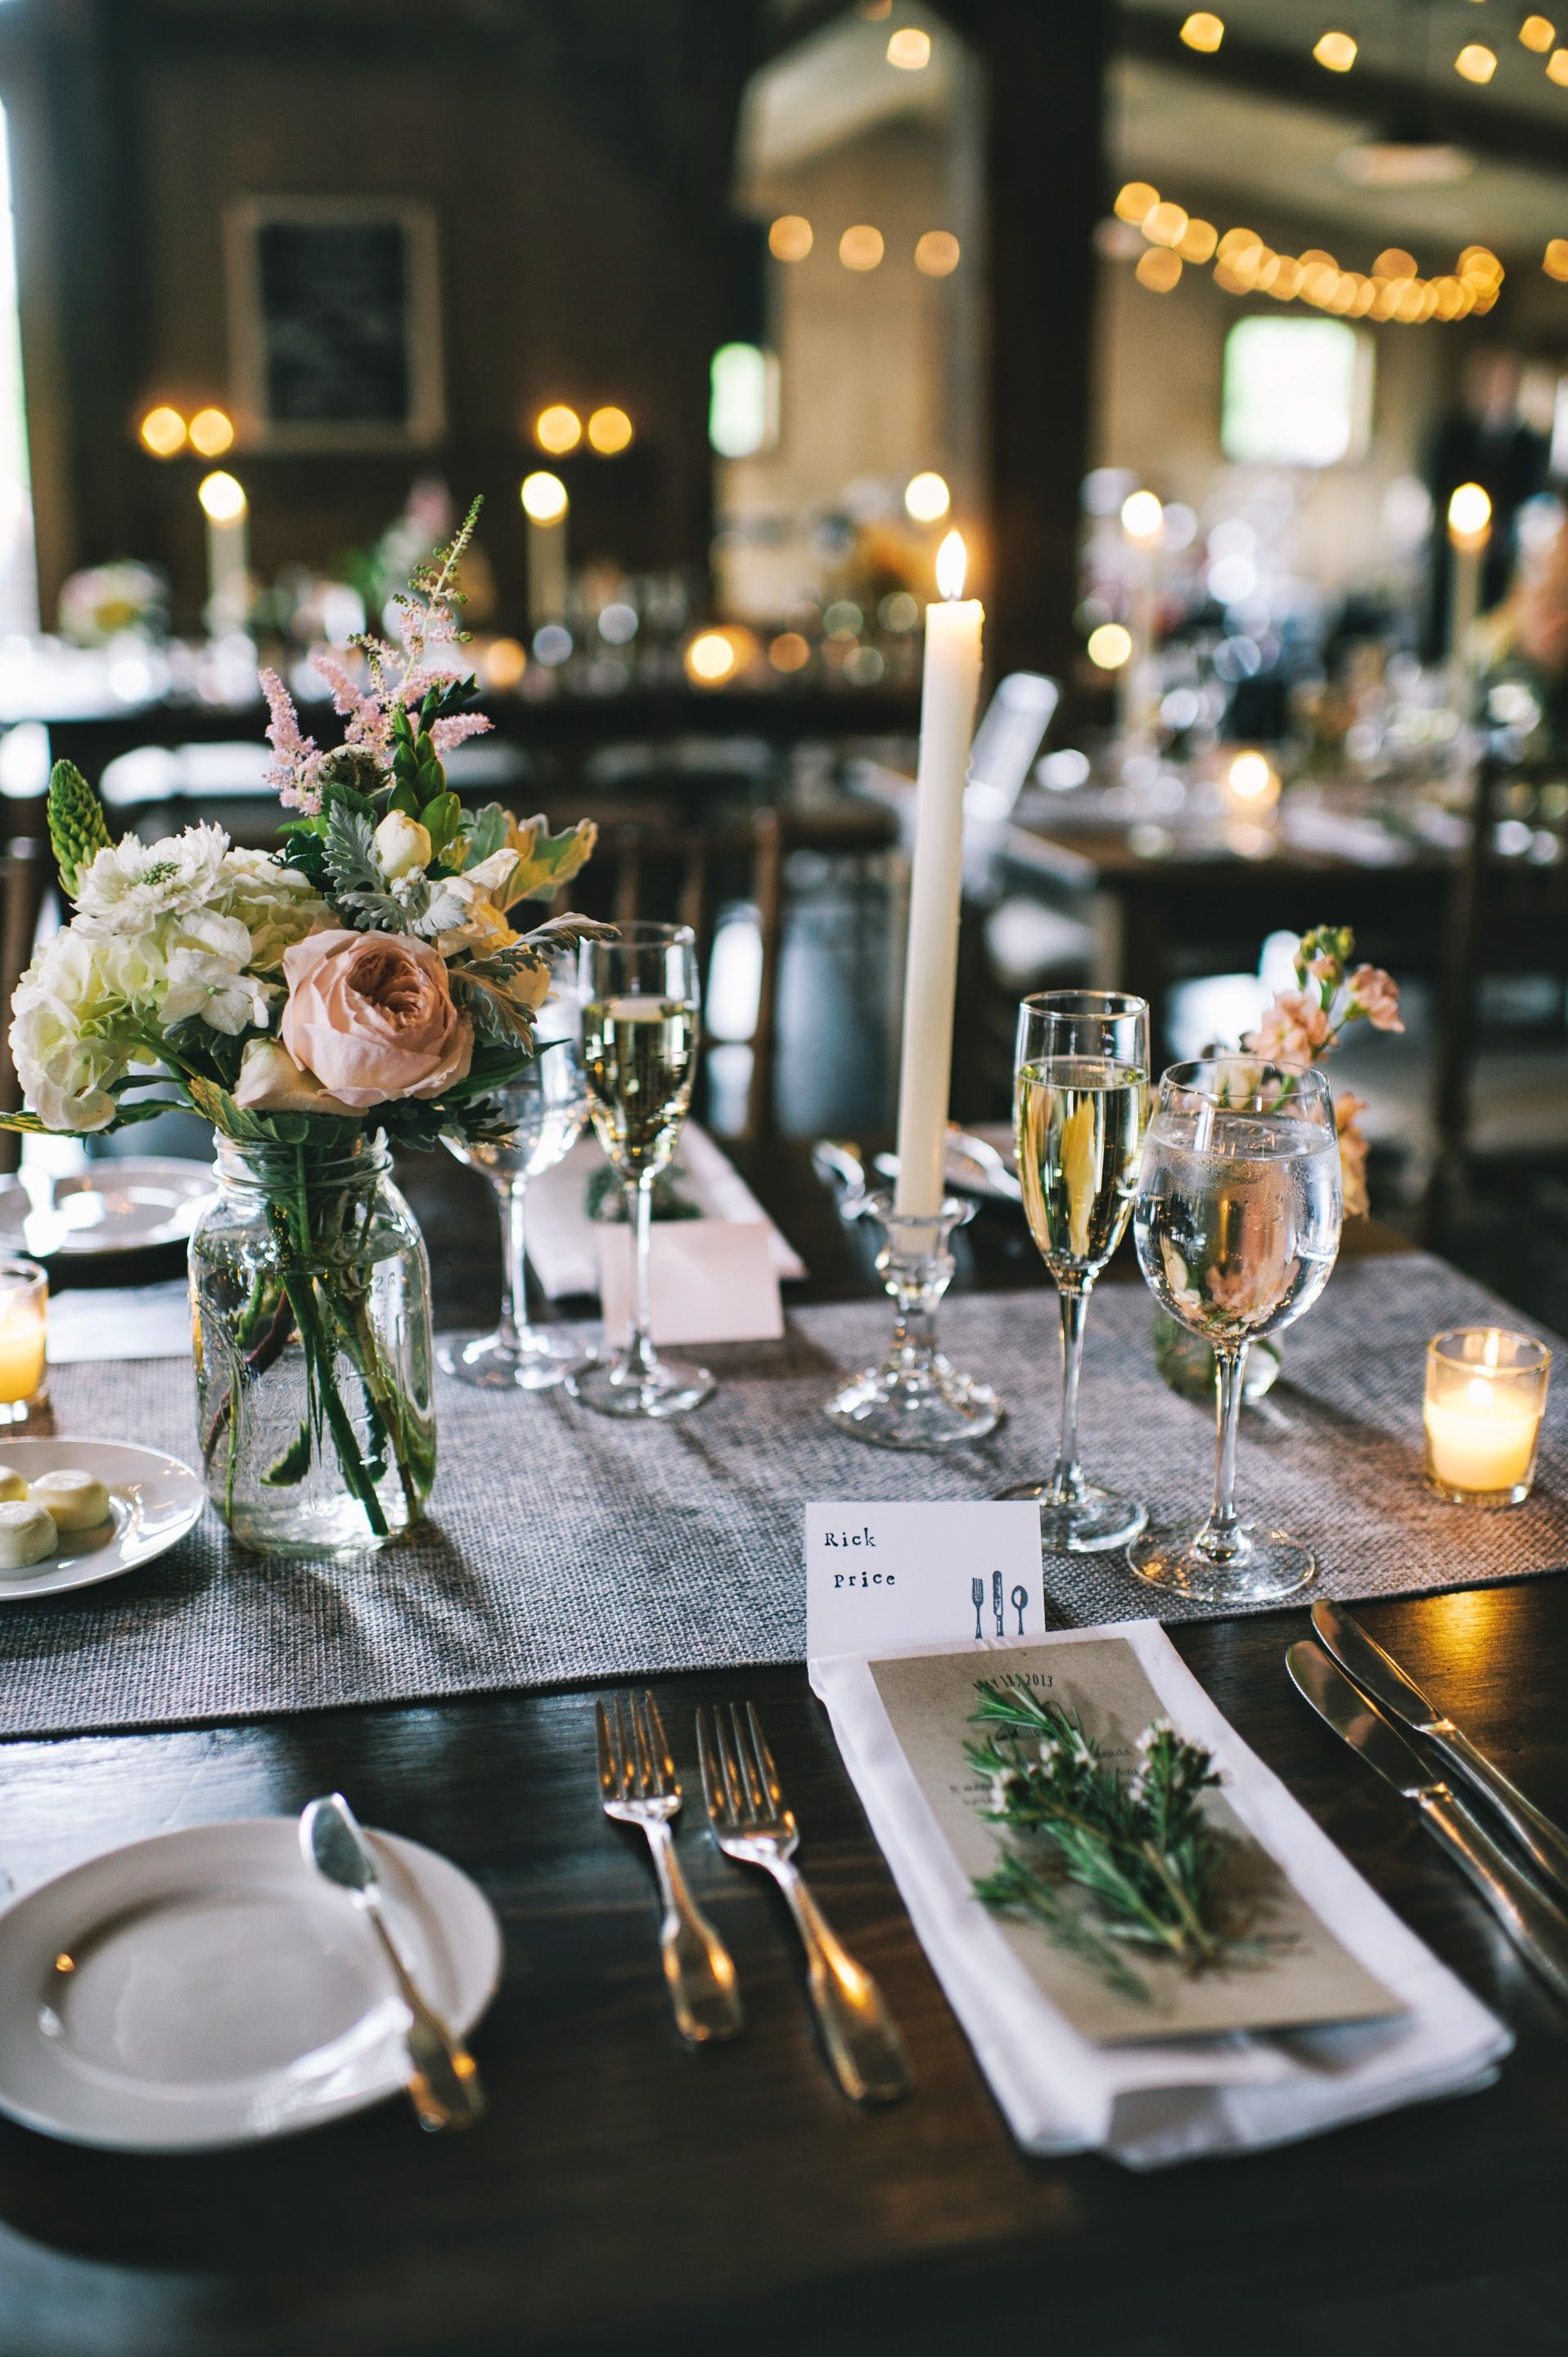 An Elegant Upscale Barn Wedding Tablescape Centerpiece